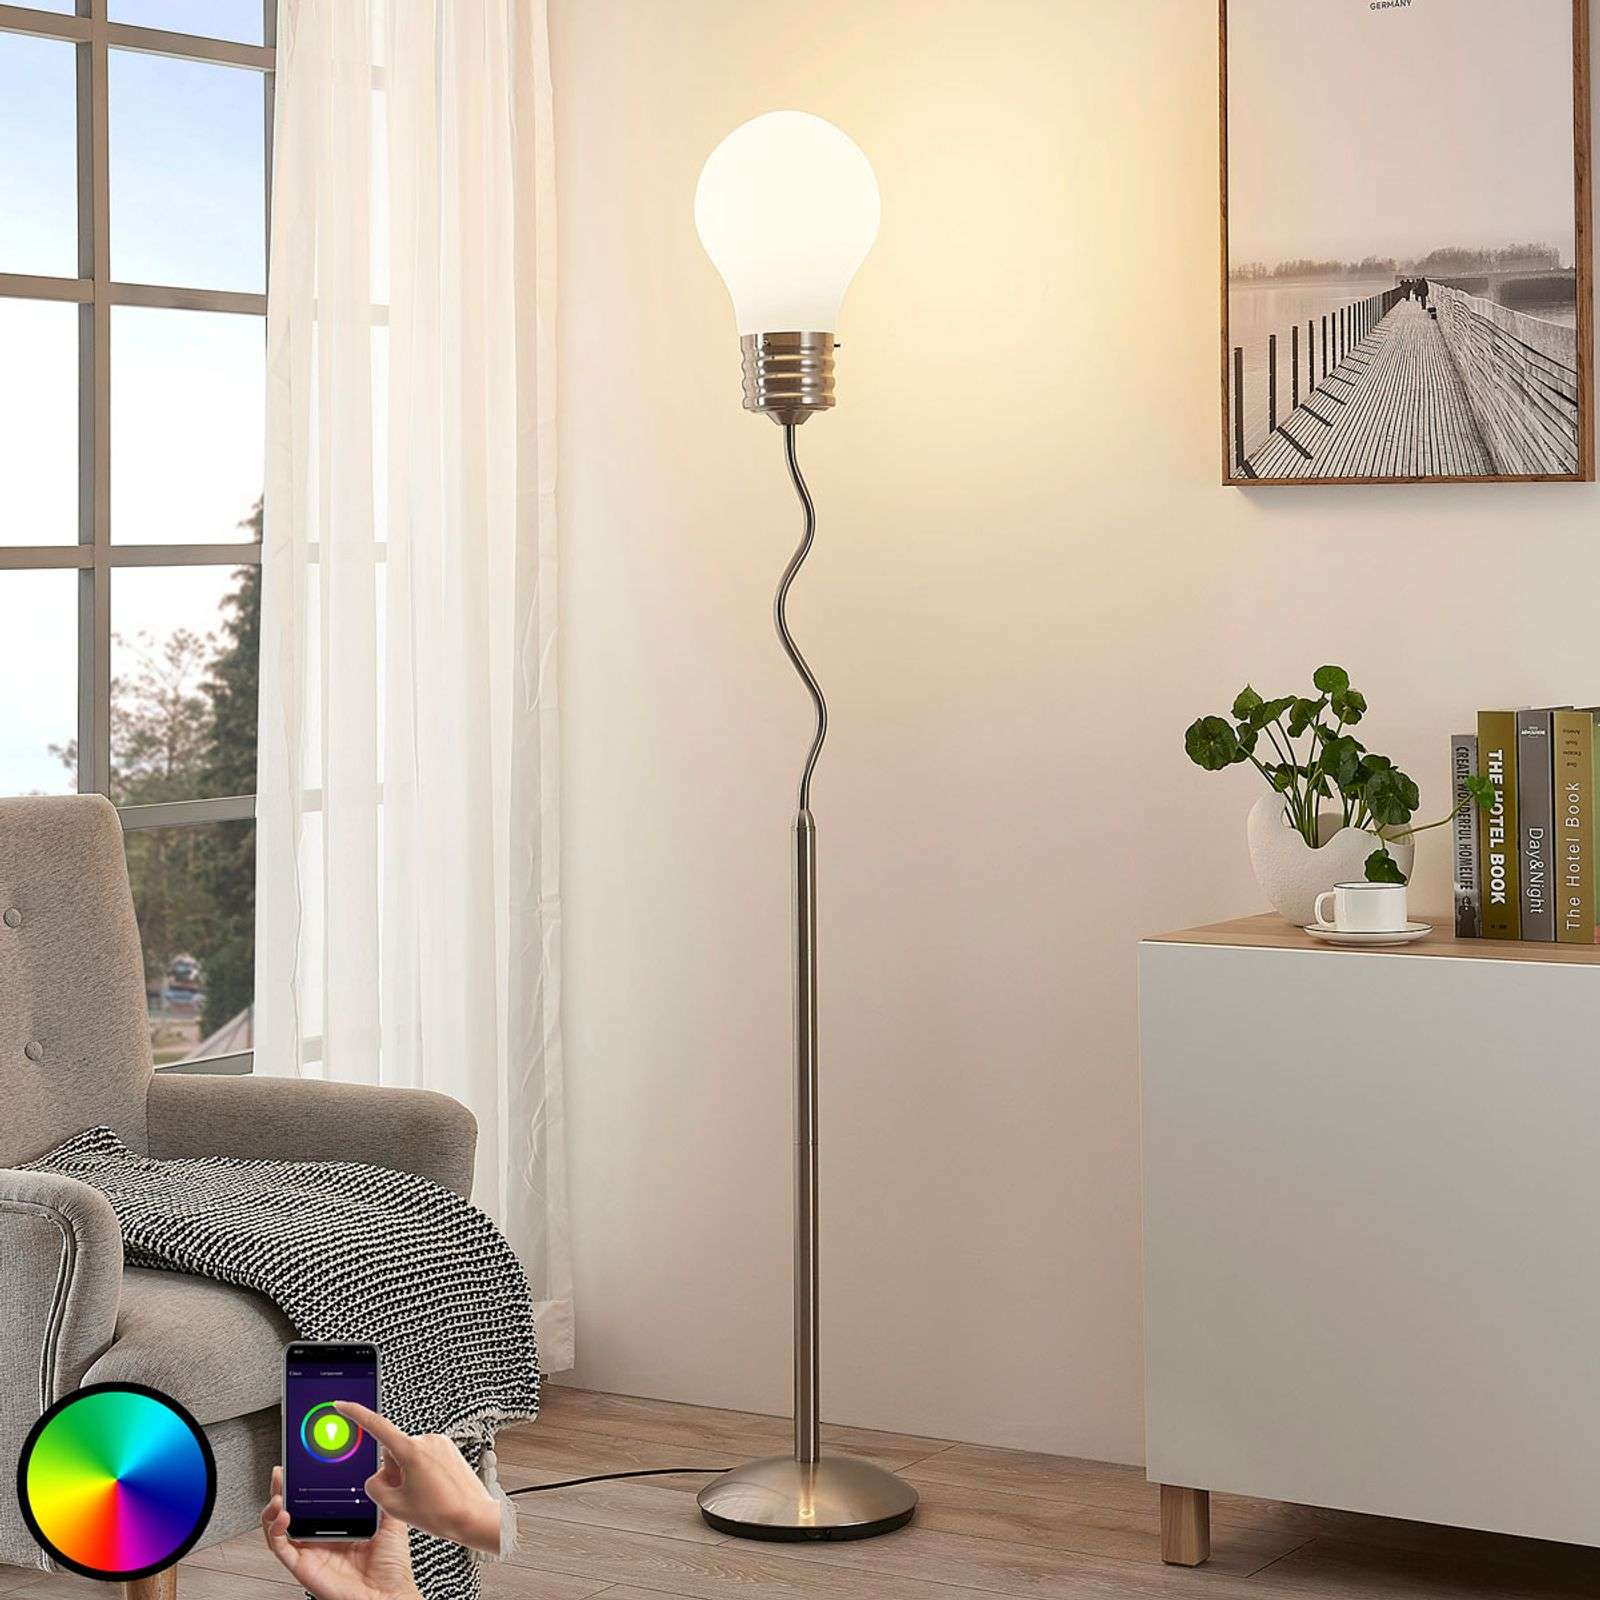 Lampadaire LED RVB Mena, avec application